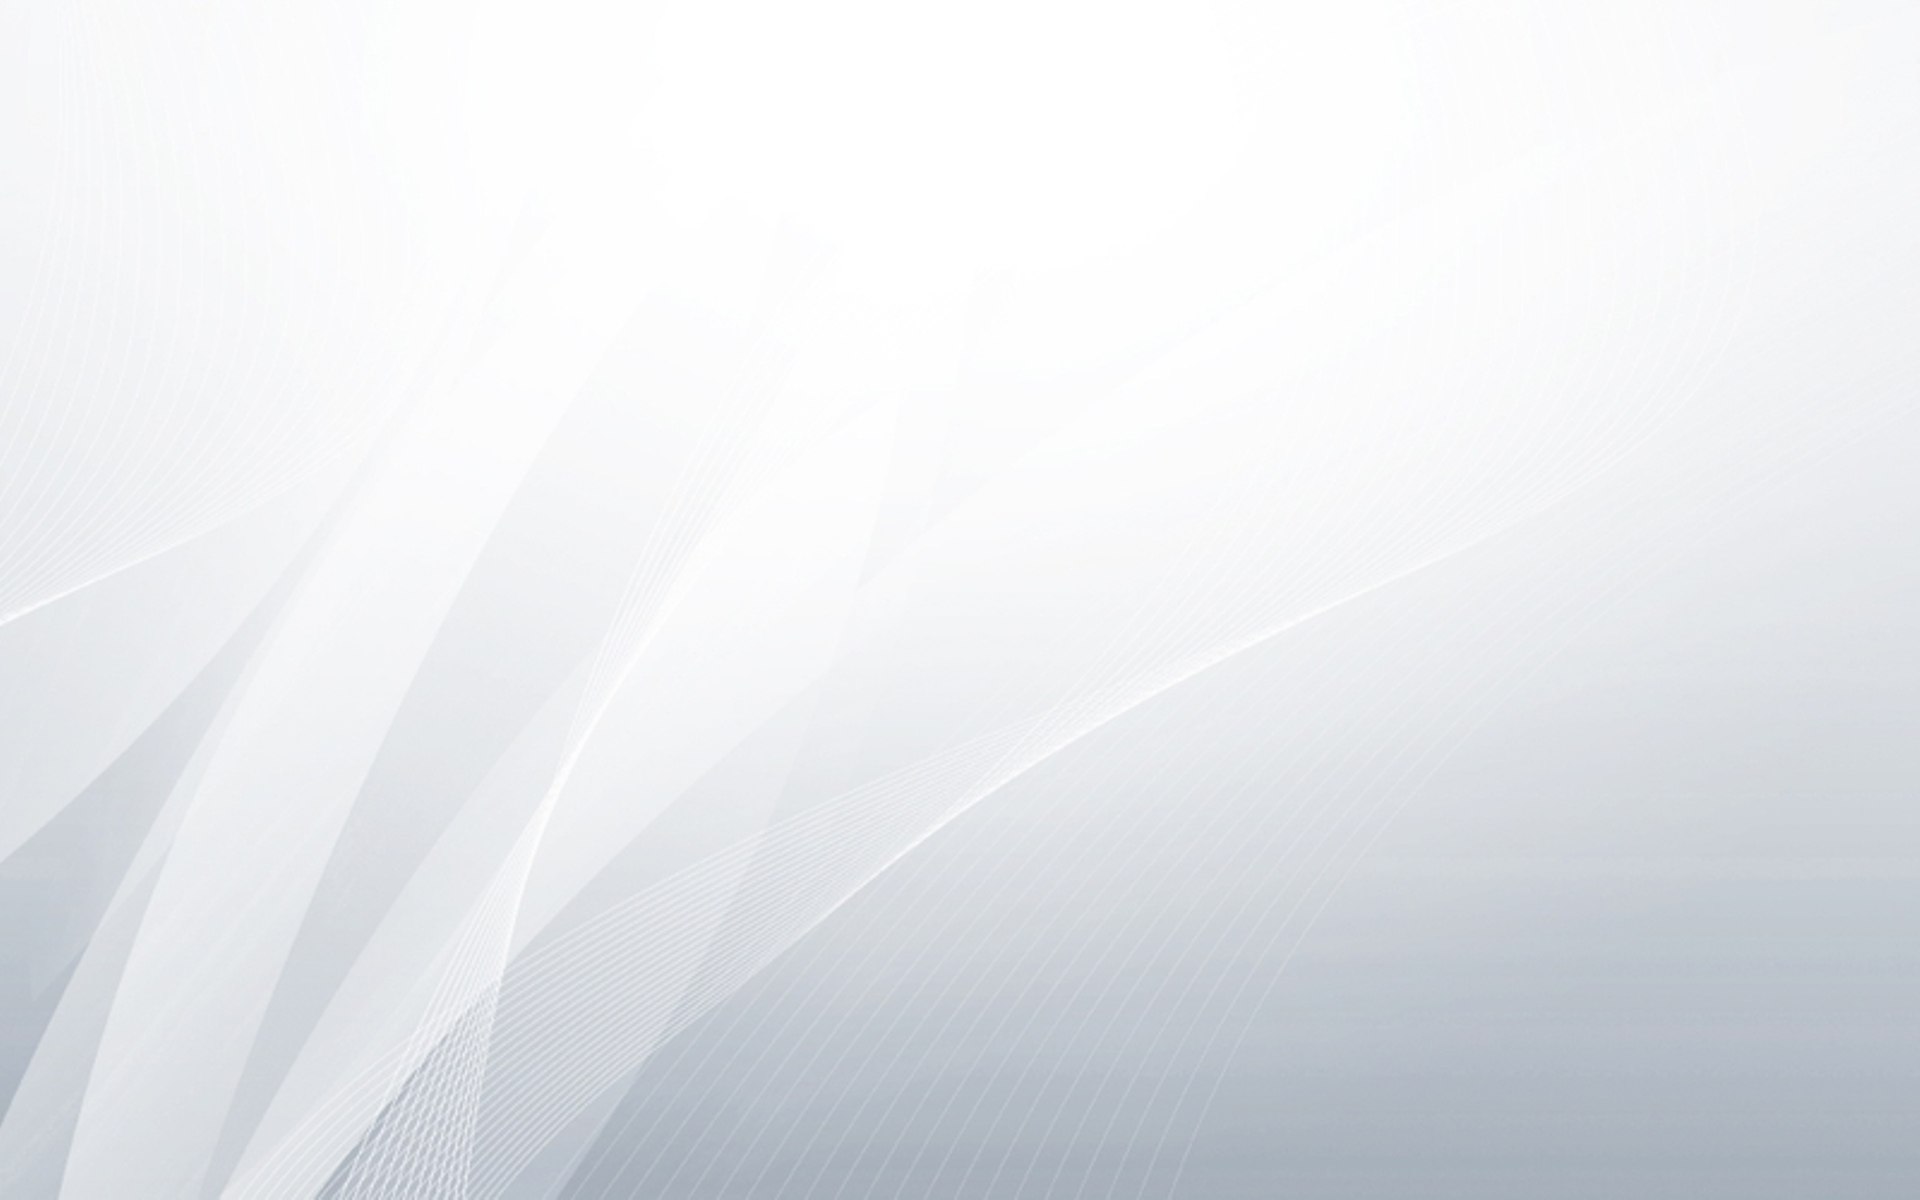 White Abstract wallpaper 1920x1200 74363 1920x1200